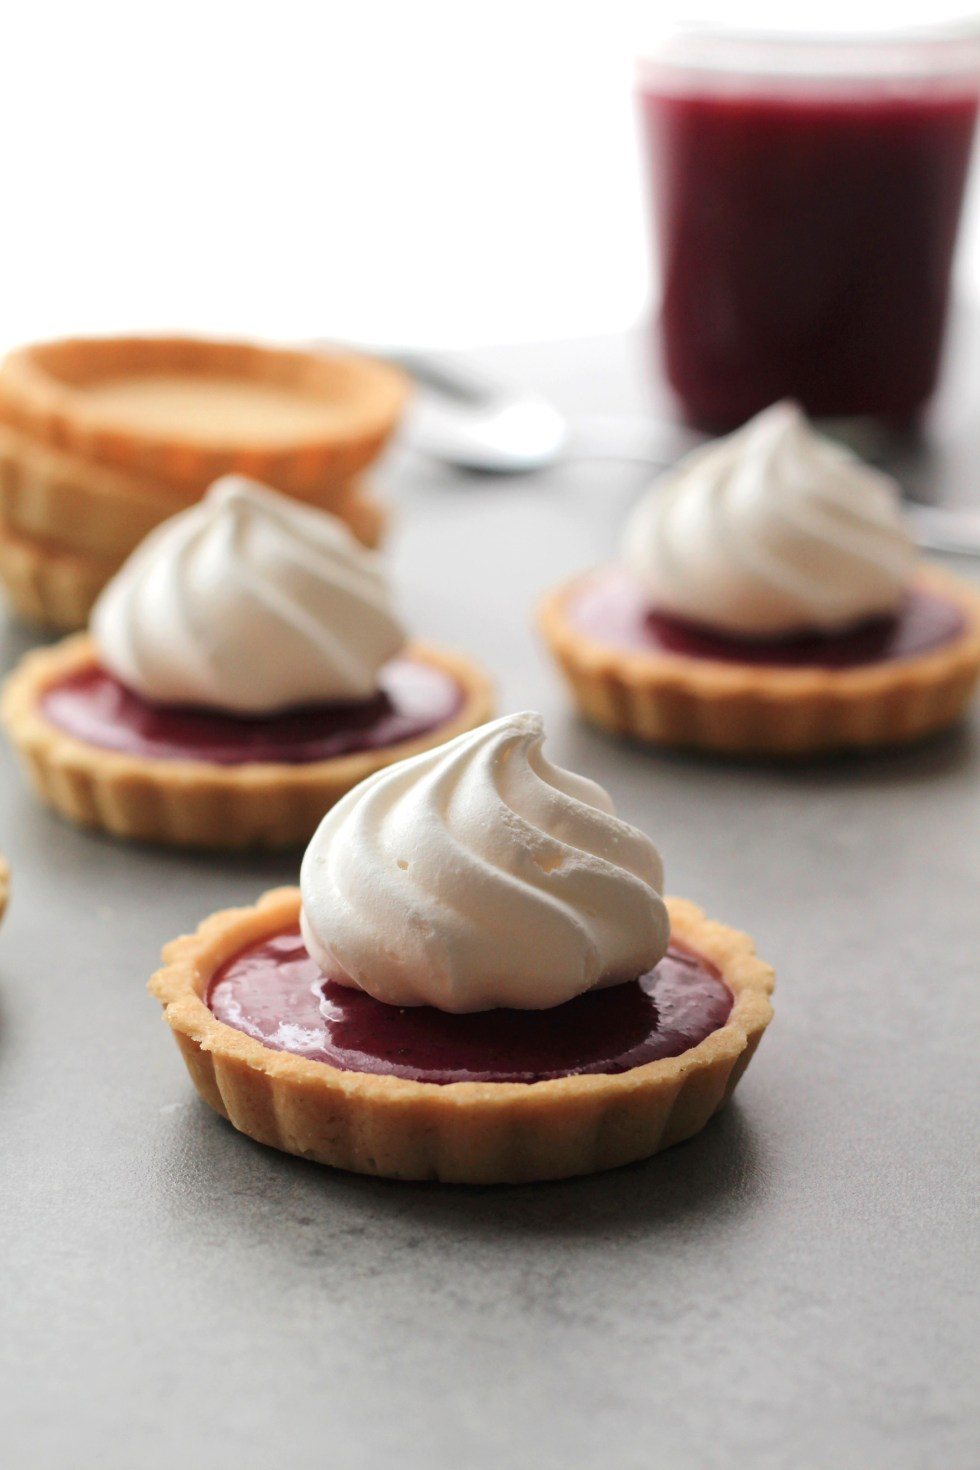 These hibiscus tarts are the perfect dinner party dessert. Make ahead